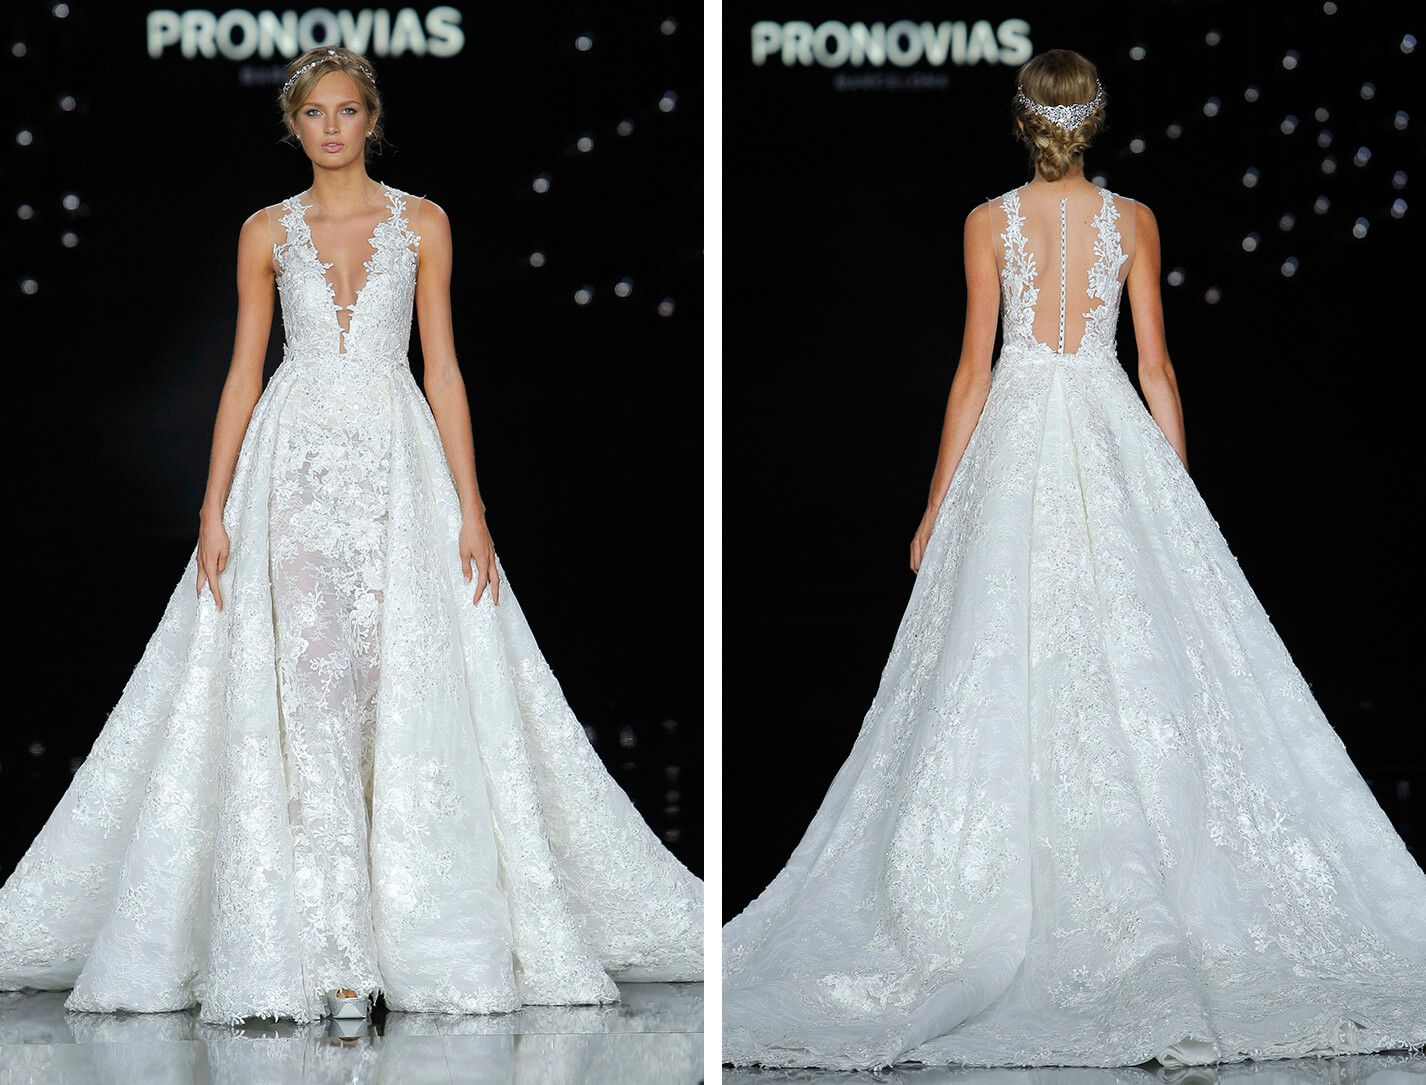 2017 Pronovias Fashion Show In 2019